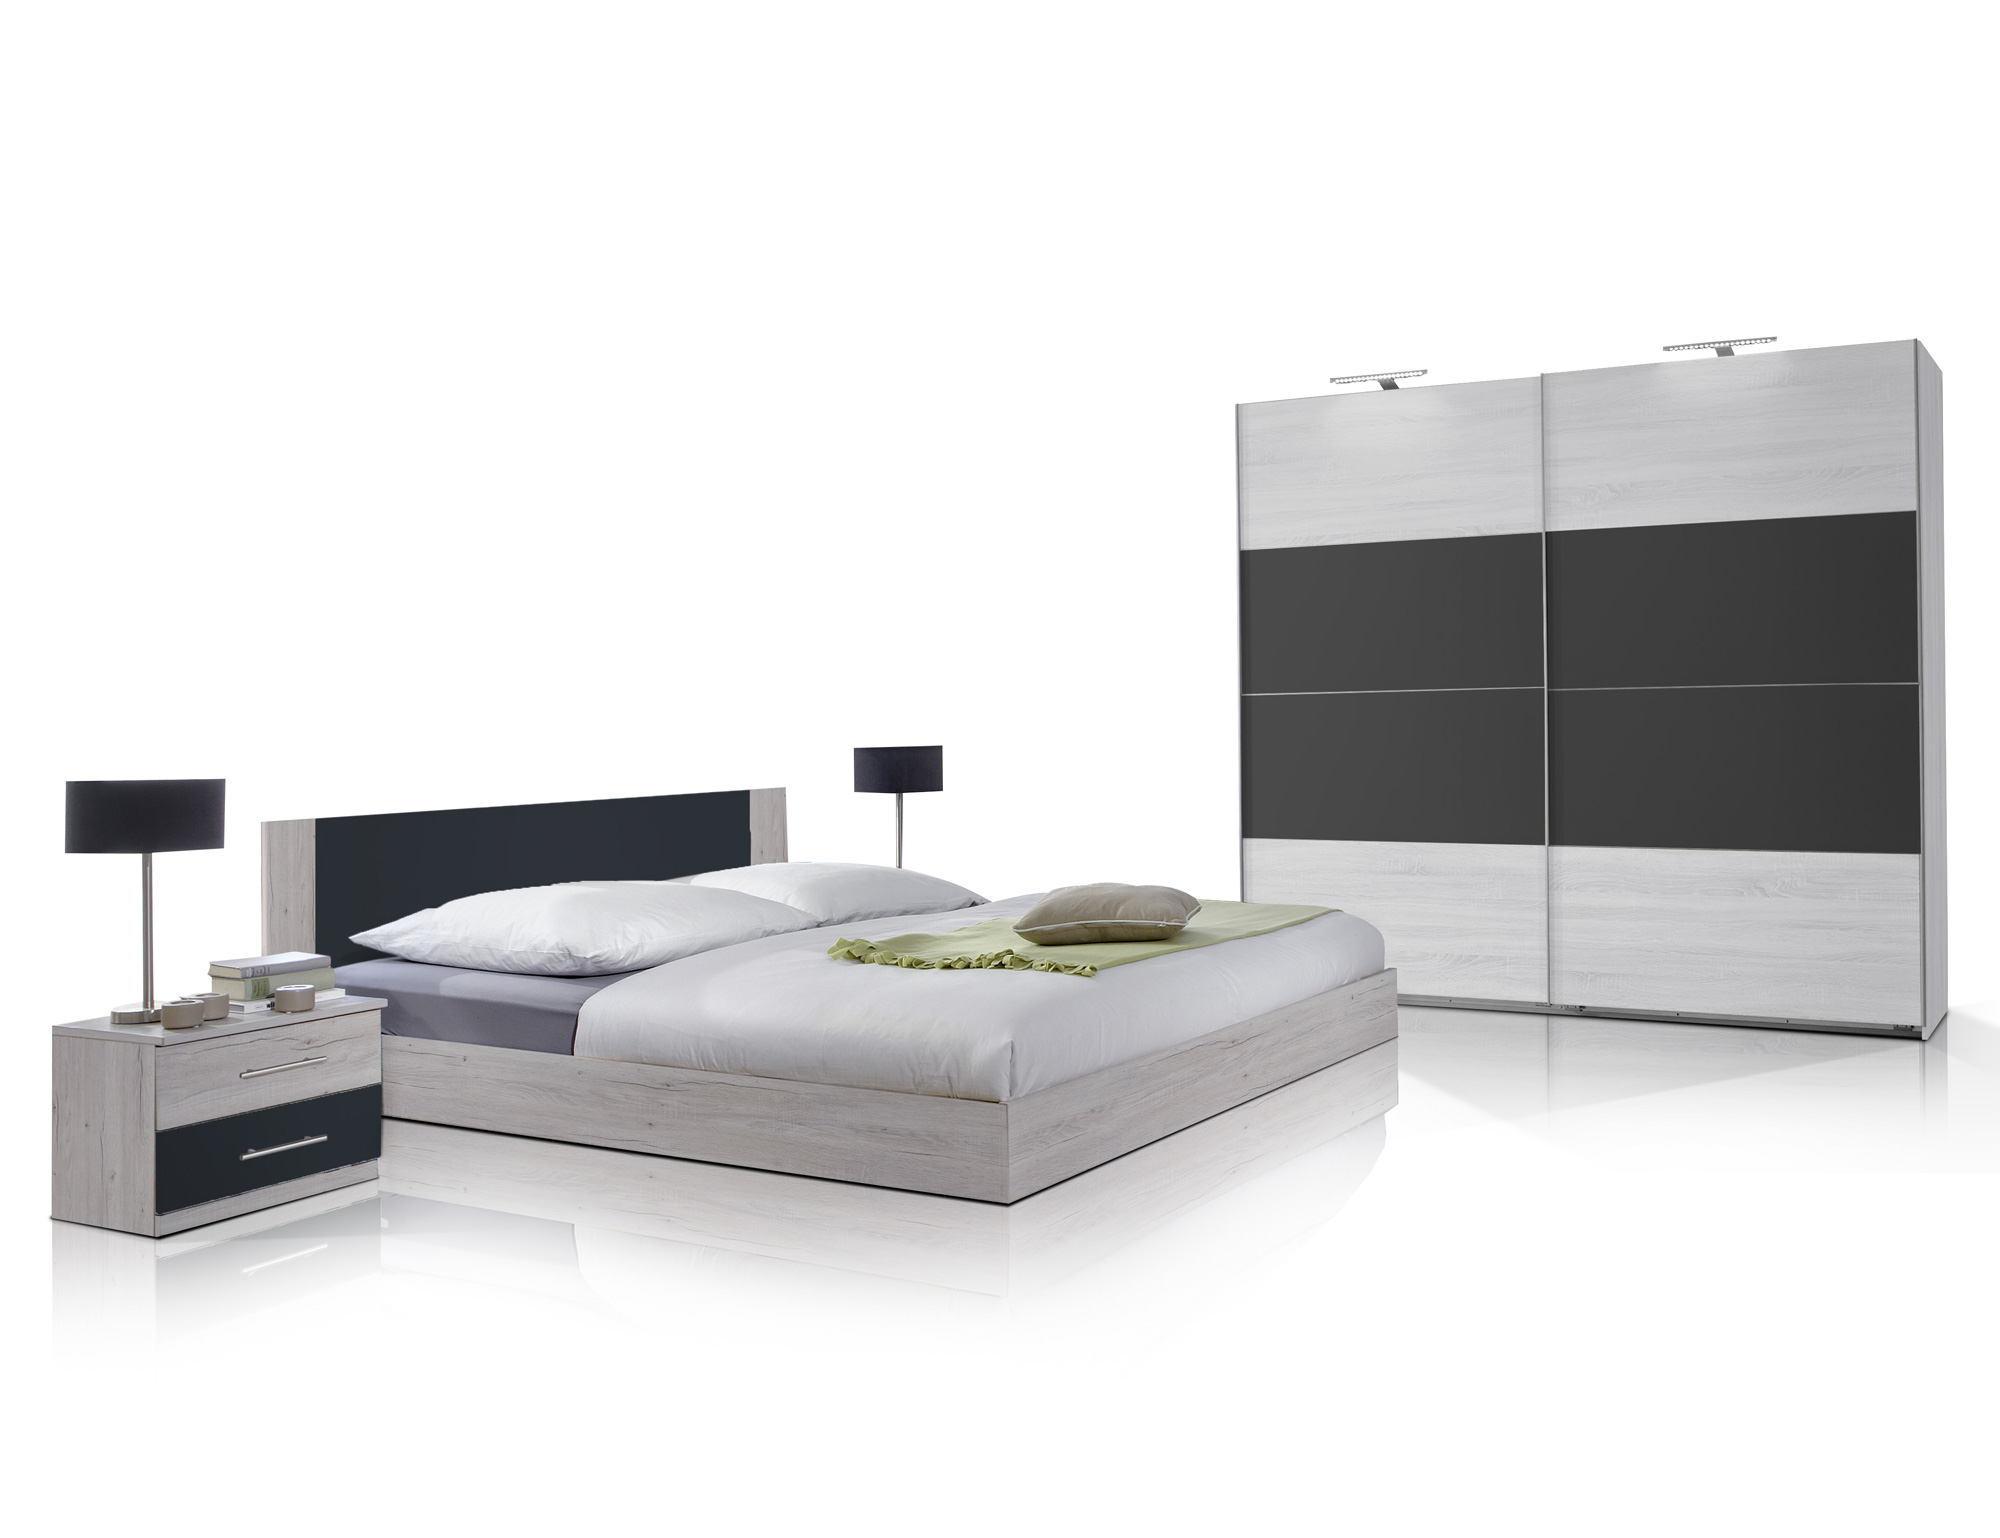 flores ii komplett schlafzimmer 180 x 200 cm wei eiche. Black Bedroom Furniture Sets. Home Design Ideas